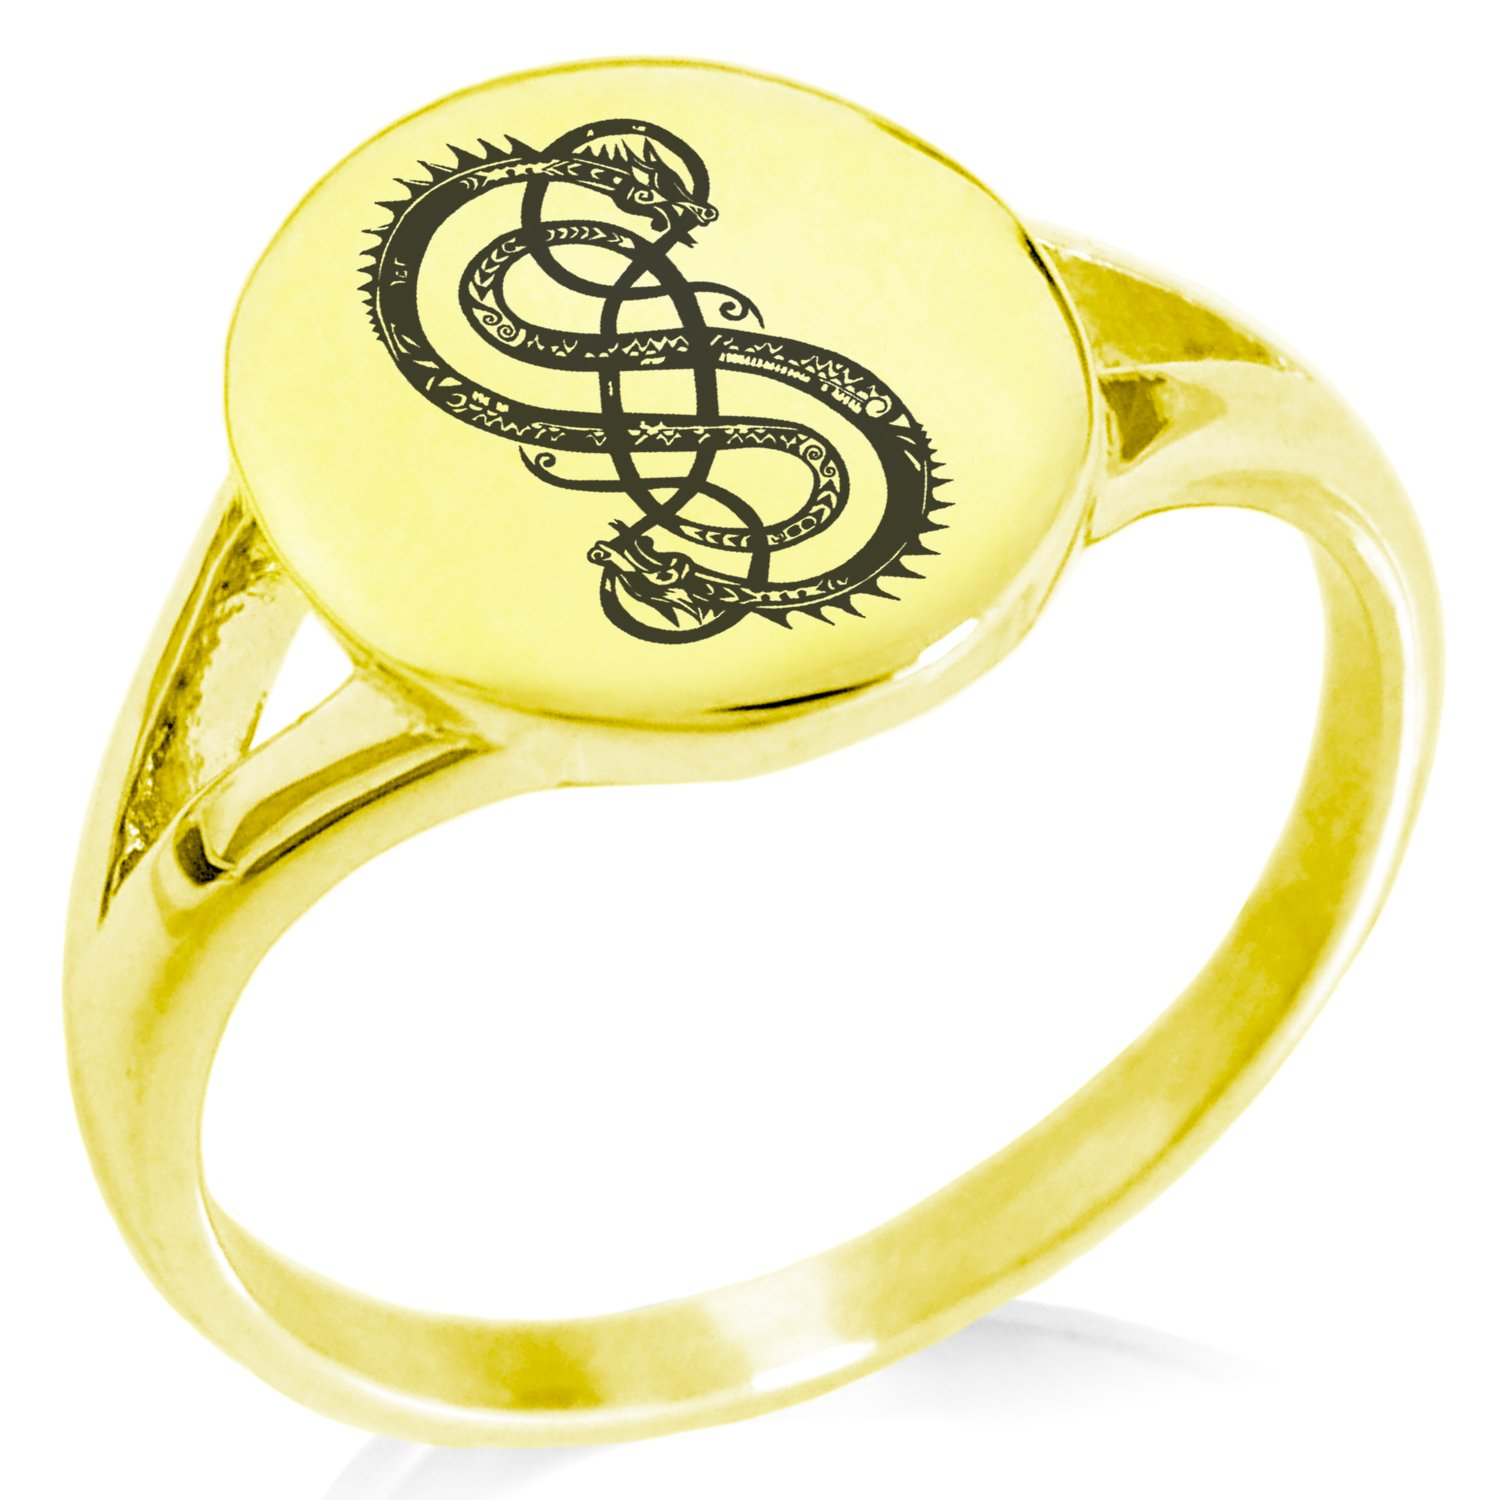 Tioneer Gold Plated Stainless Steel God of Mischief Loki Viking Norse Symbol Minimalist Oval Top Polished Statement Ring, Size 6